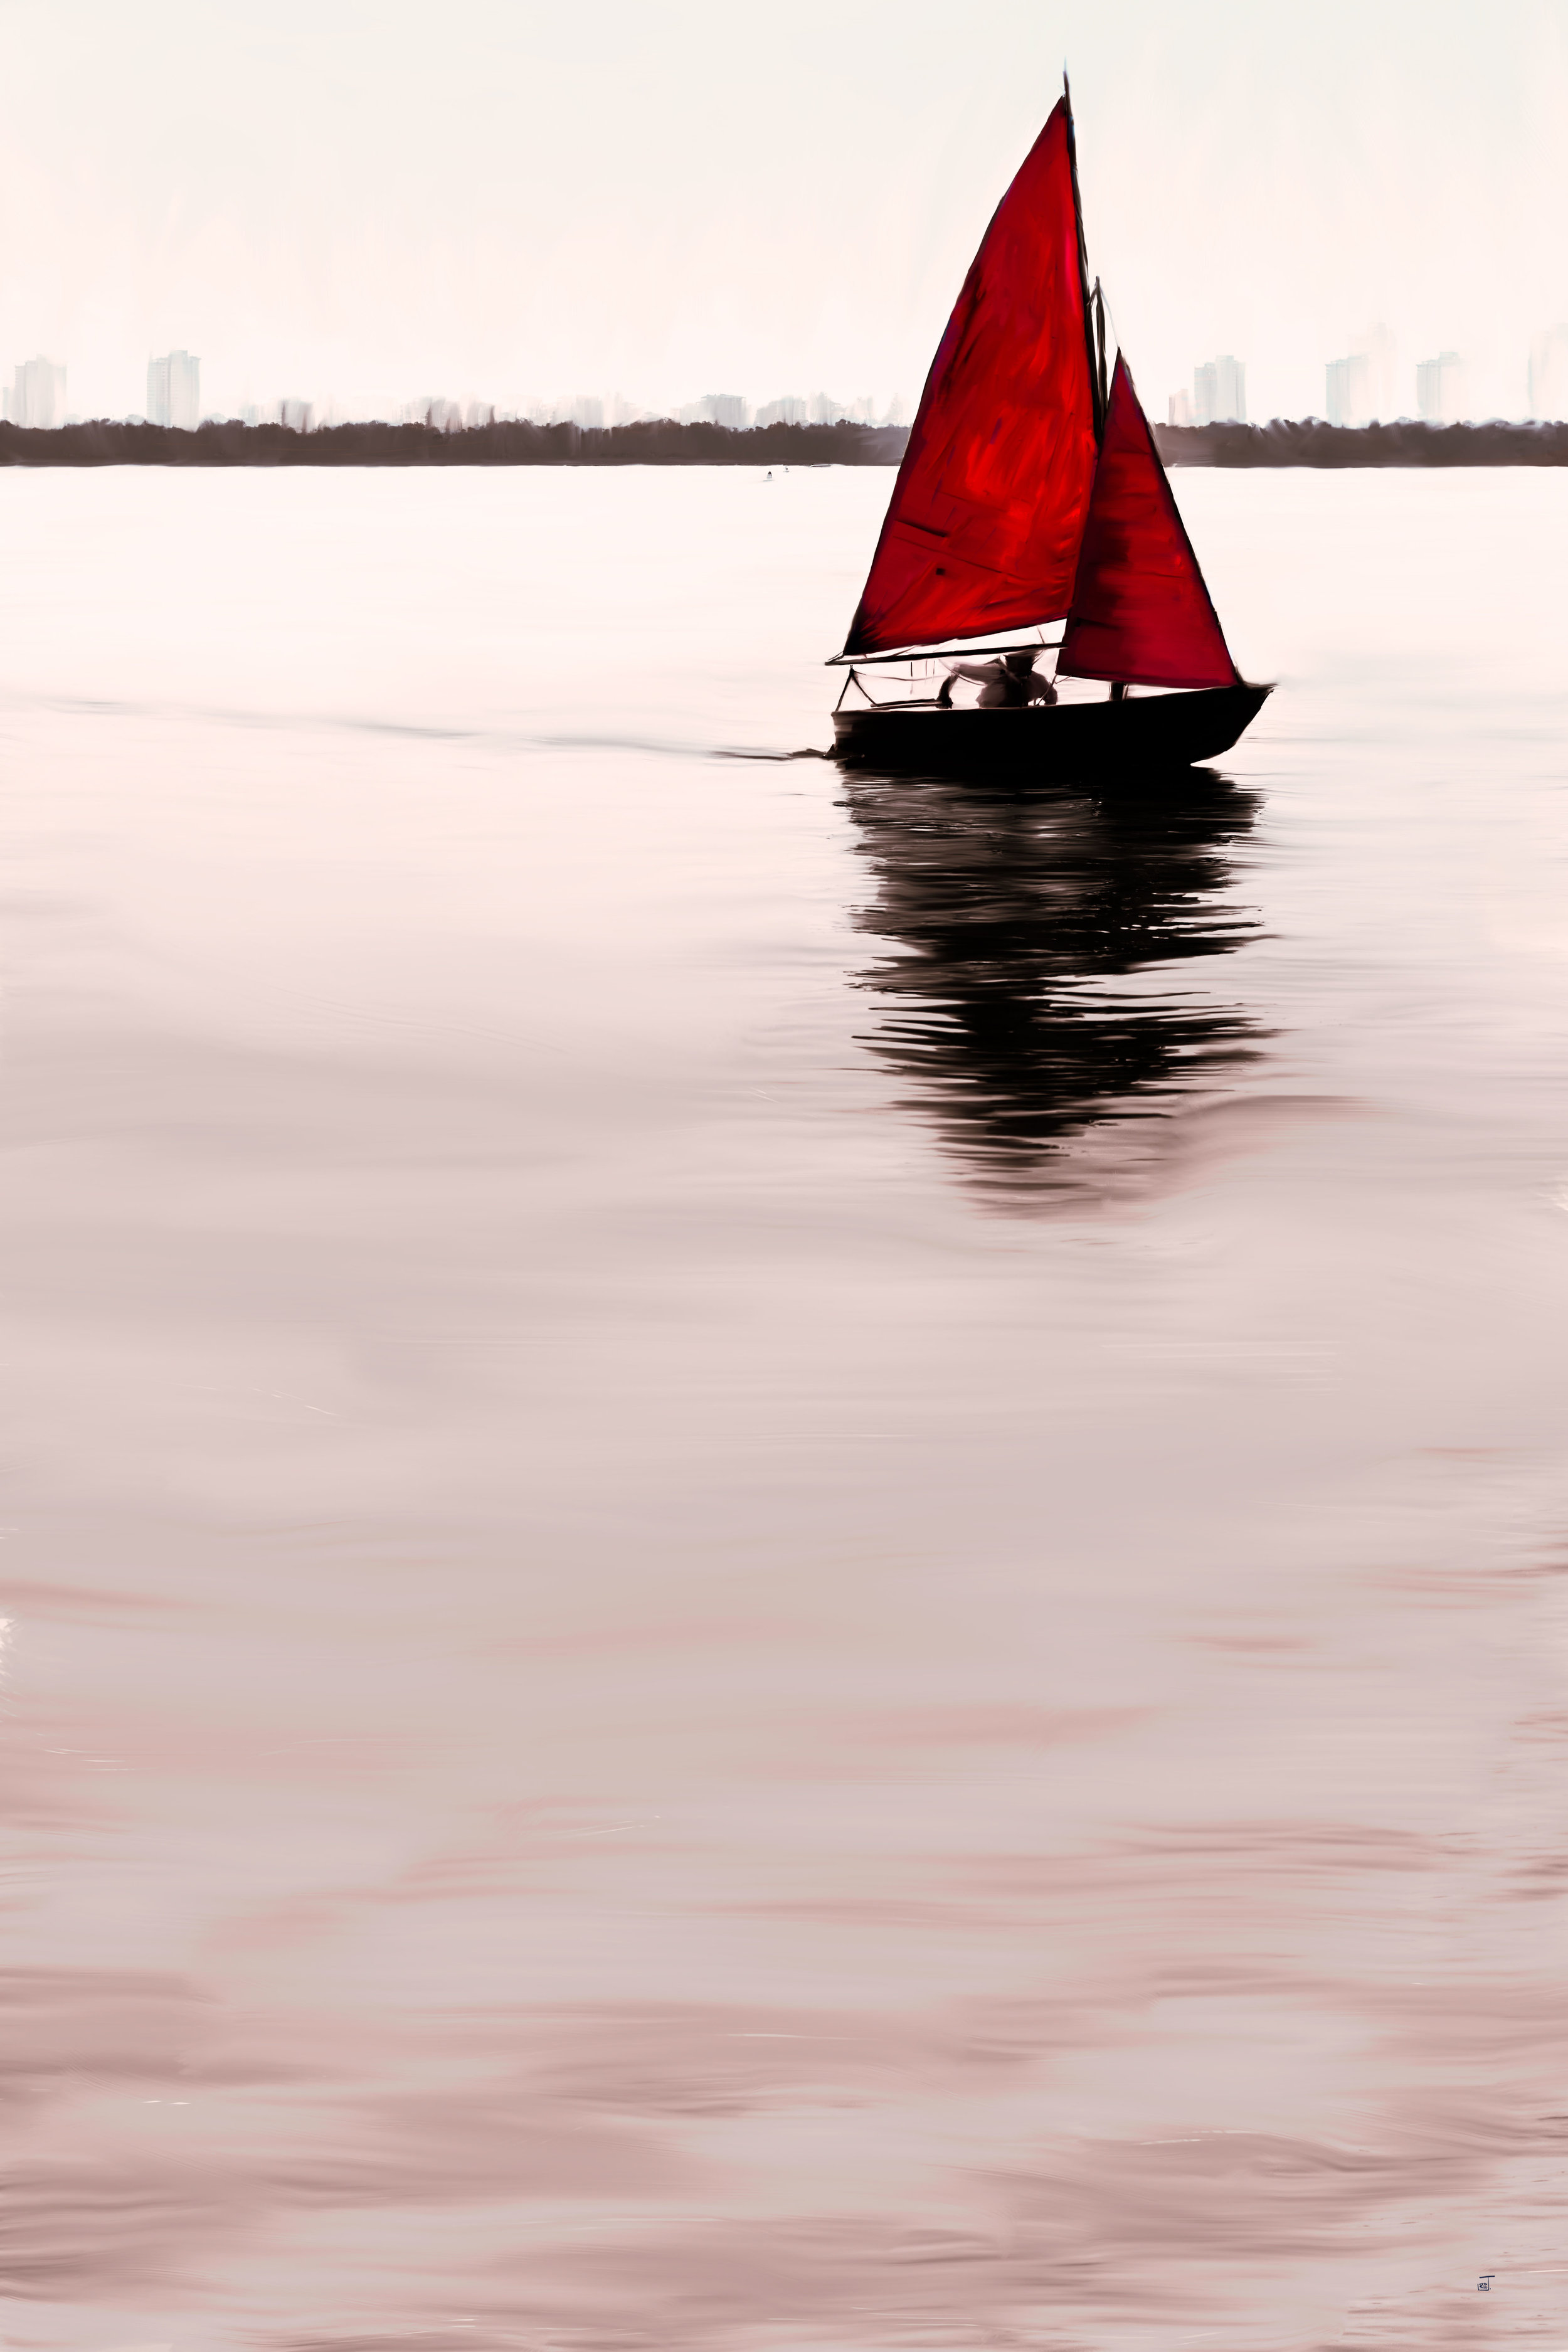 The little red sail boat